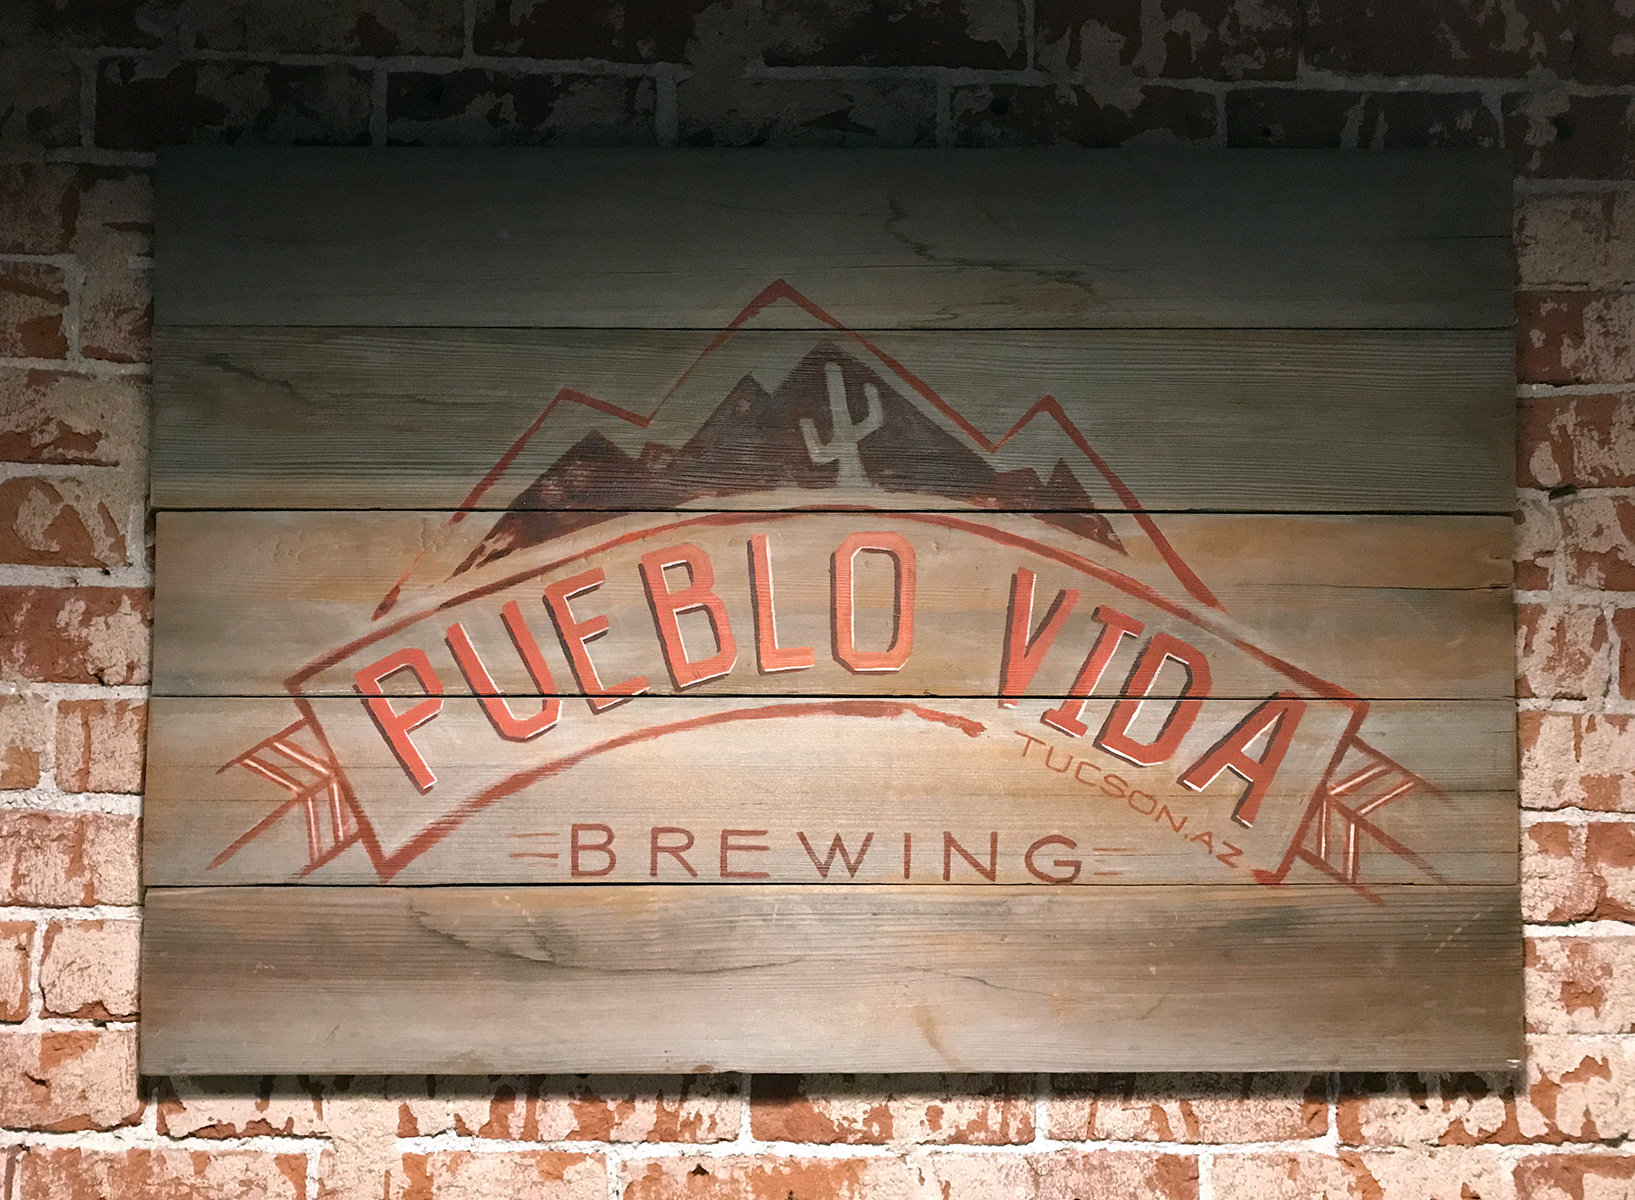 Pueblo Vida Brewing Co. in Tucson, Arizona by Jets Like Taxis